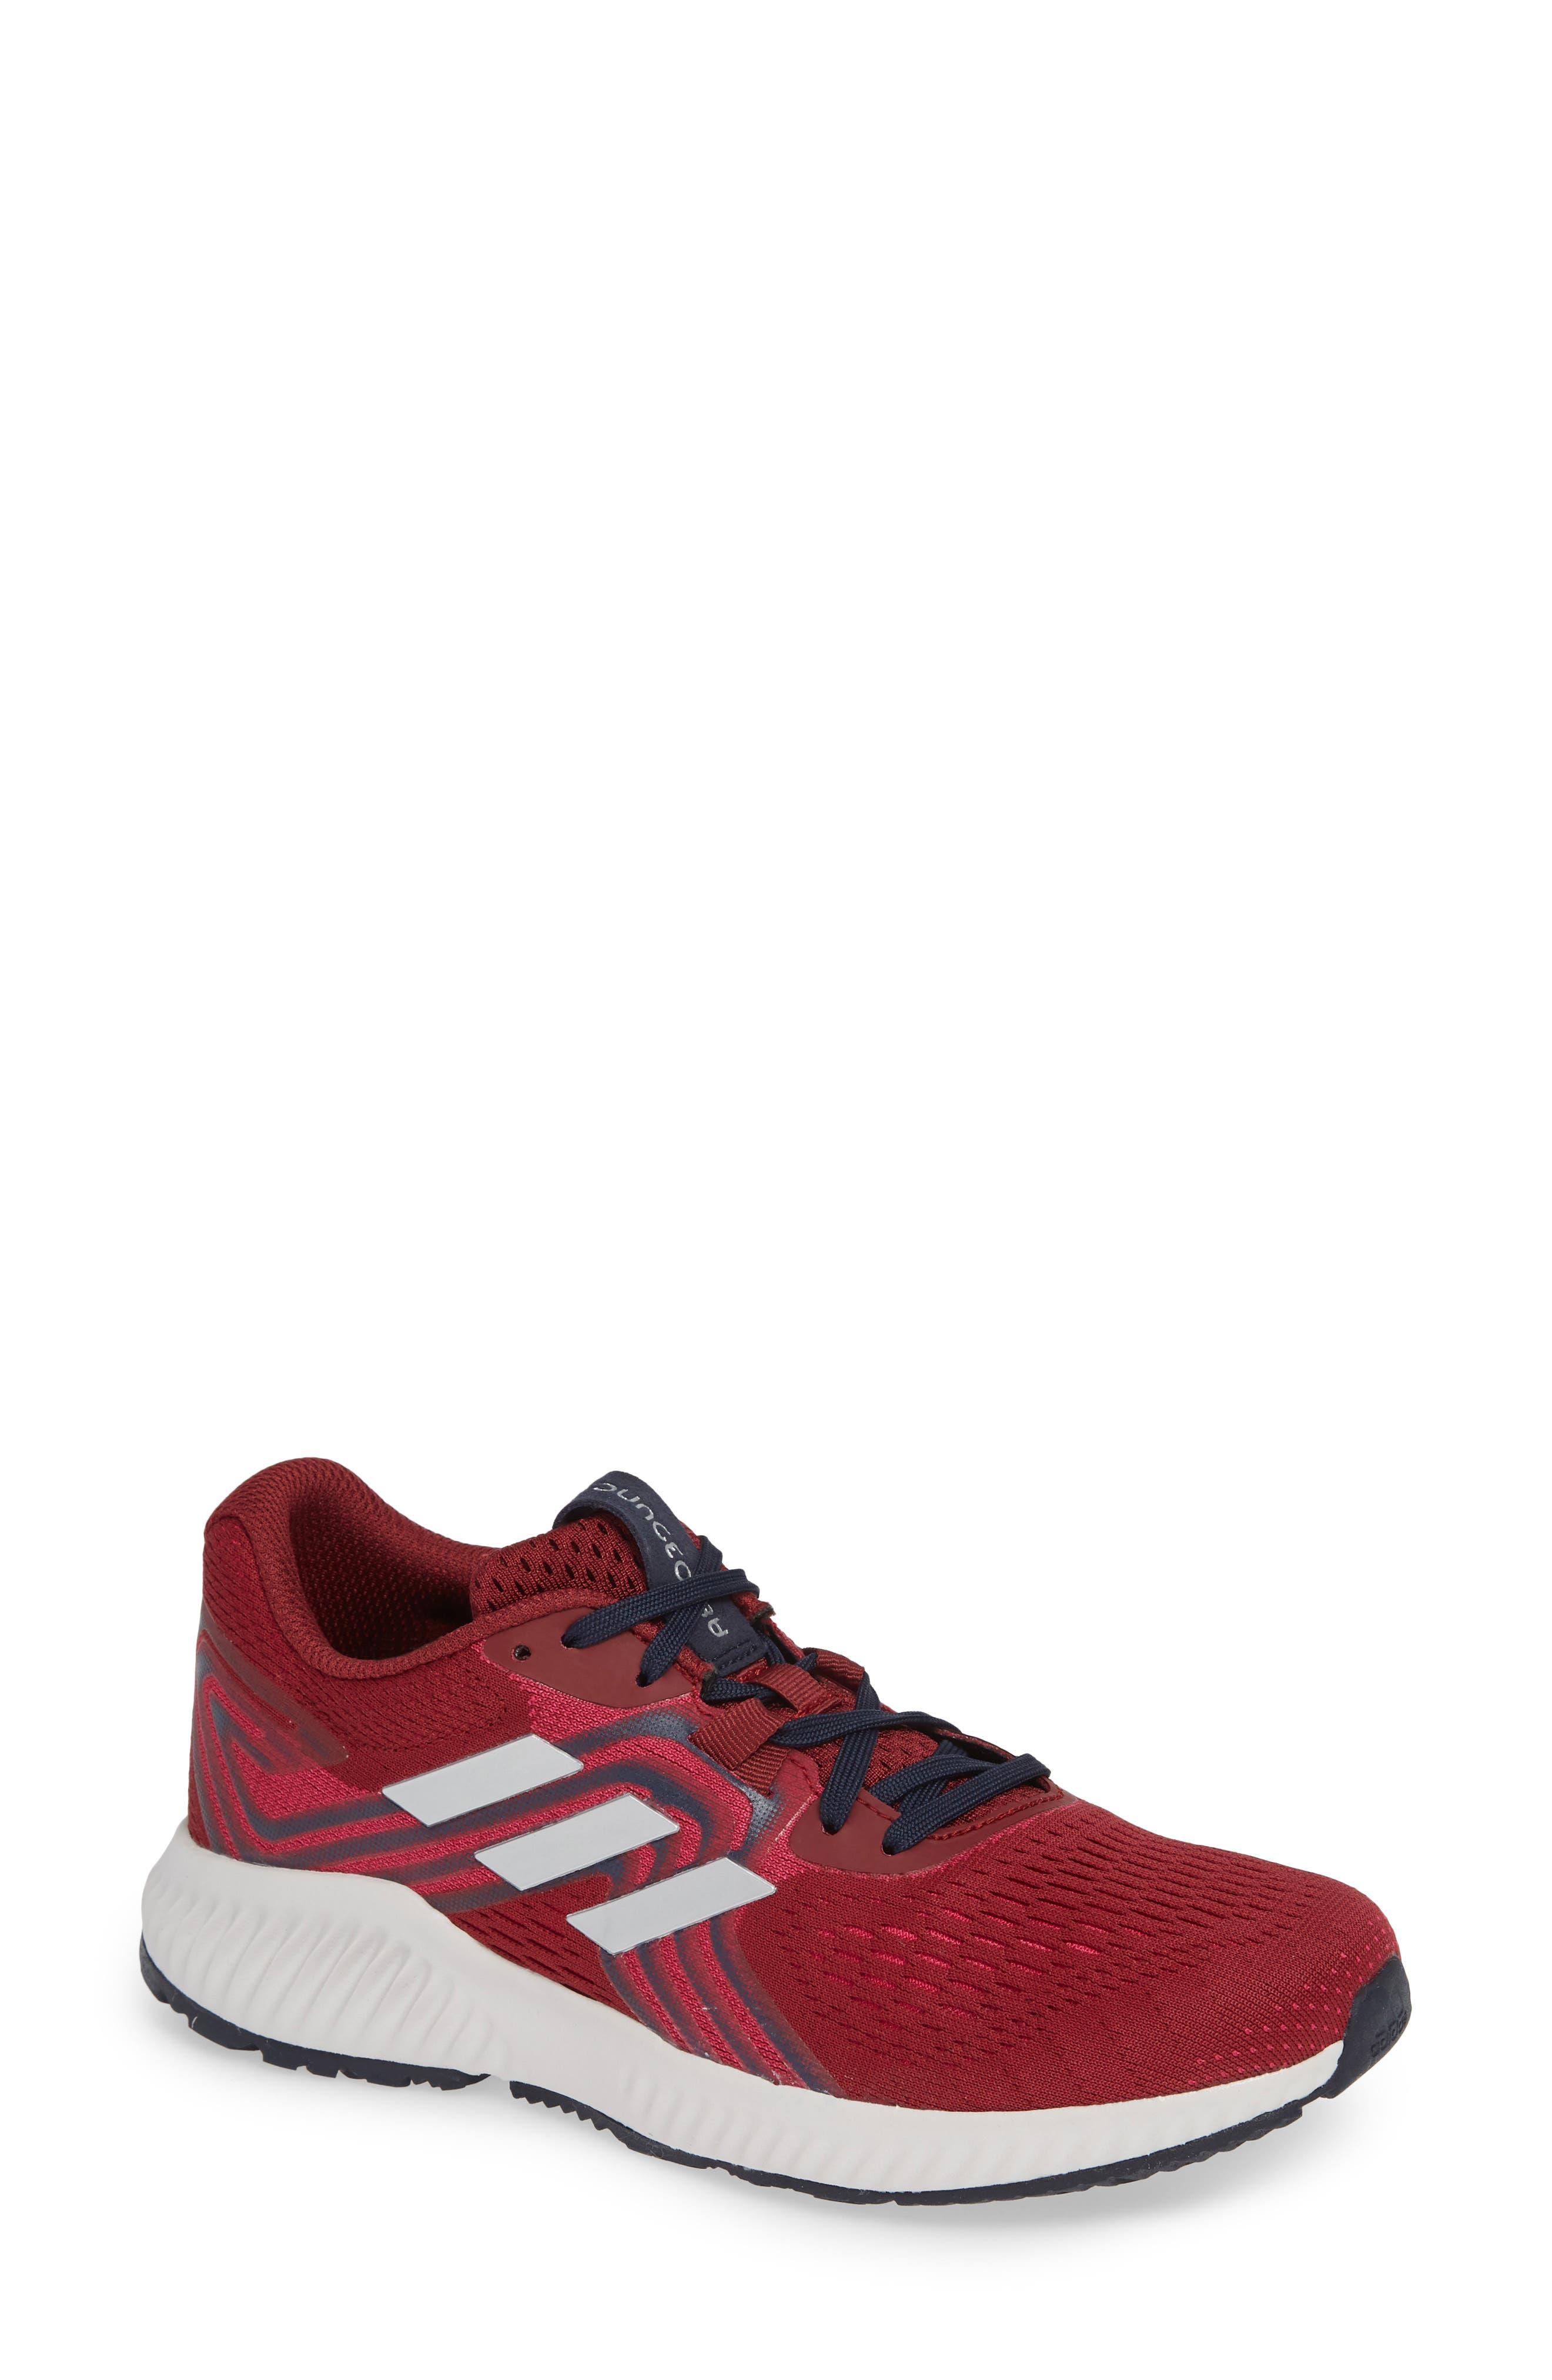 AeroBounce 2 Running Shoe,                         Main,                         color, NOBLE MAROON/ SILVER/ MAGENTA